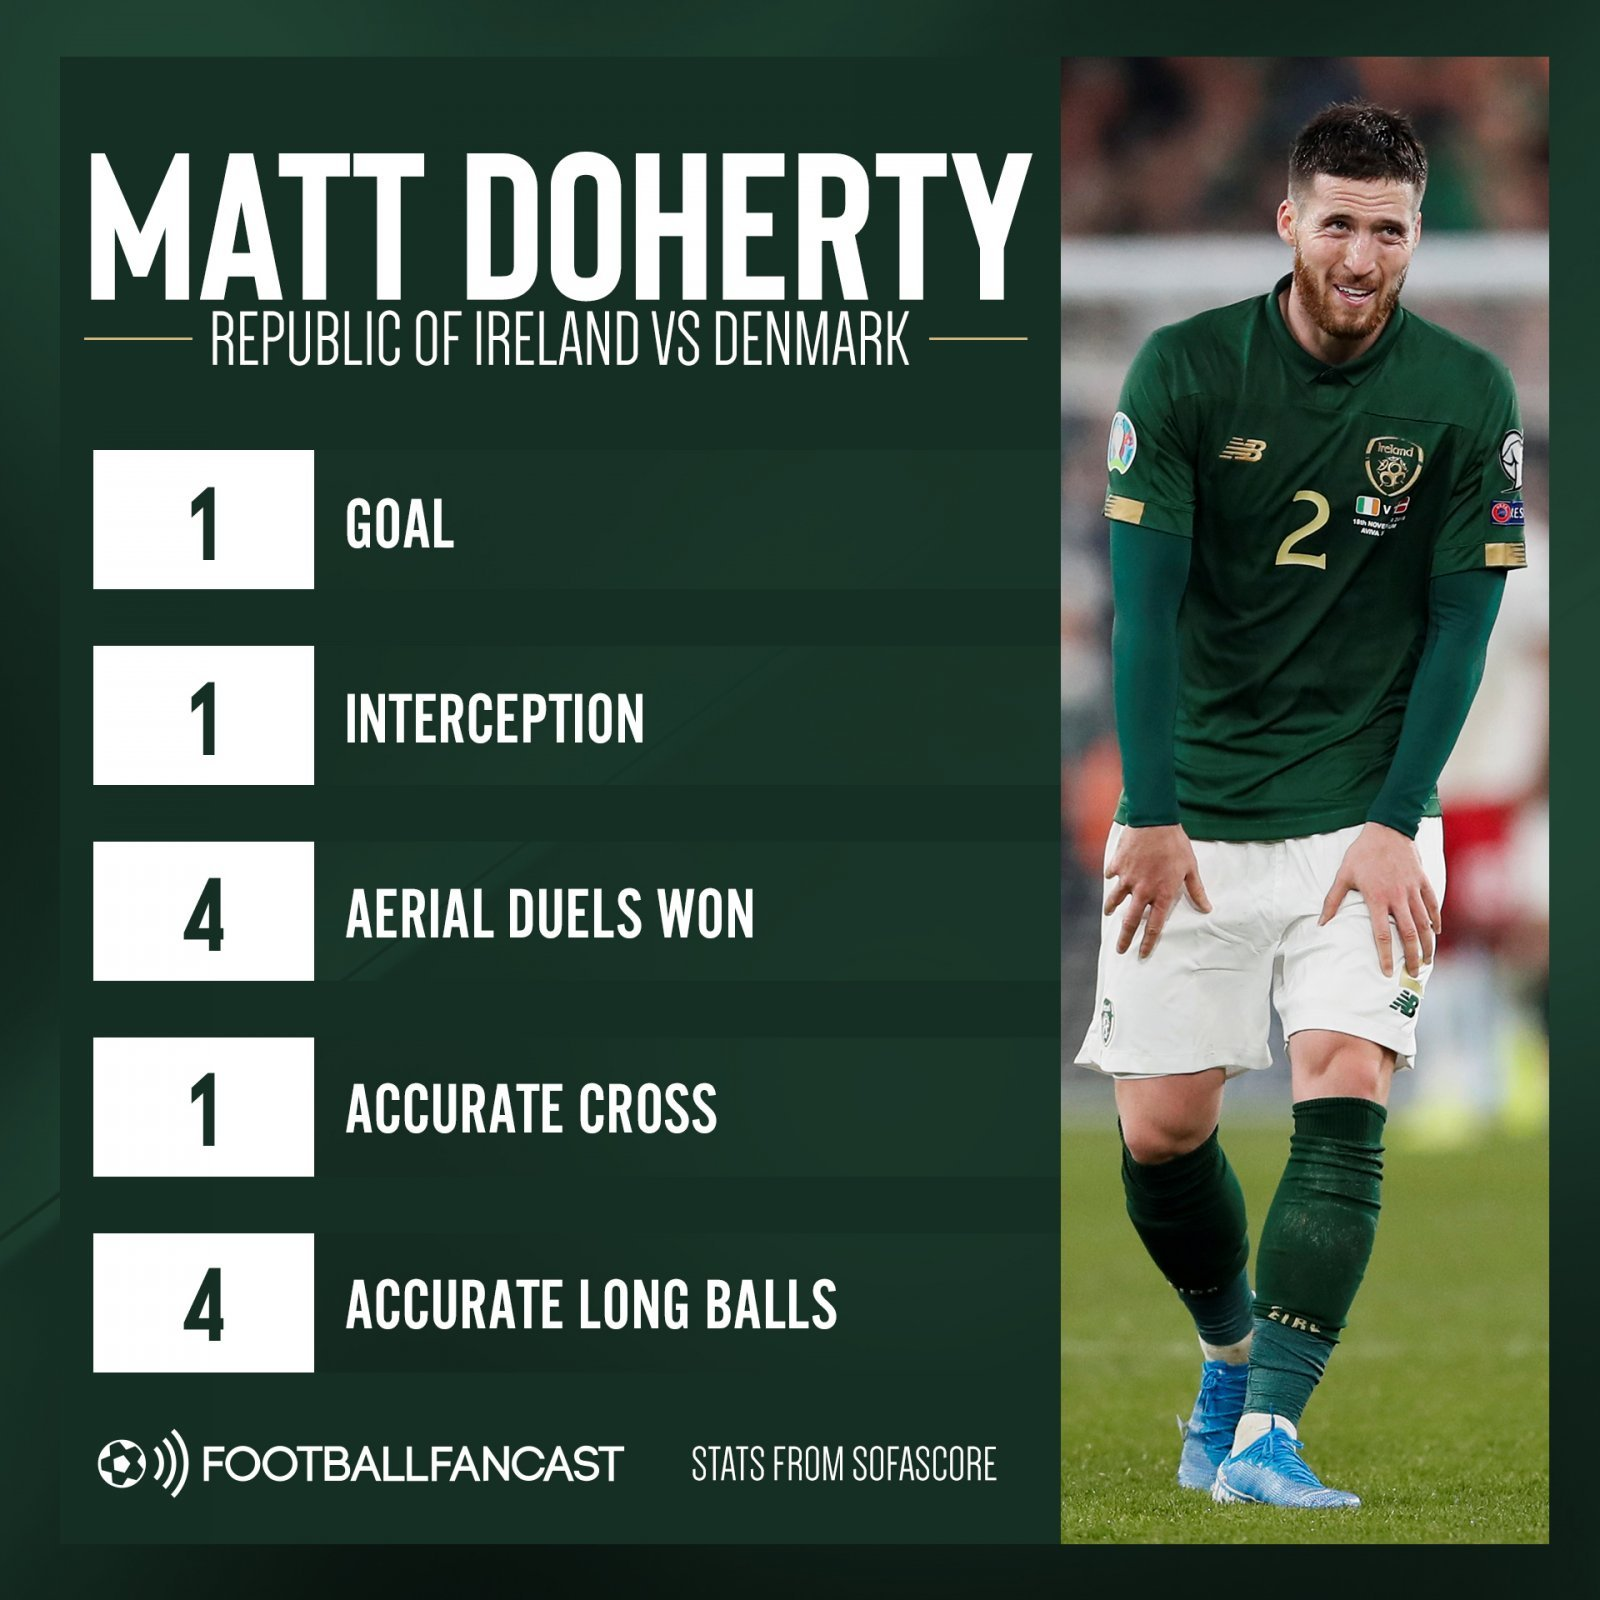 Matt Doherty Republic of Ireland vs Denmark - £13.5m-rated Wolves ace conjures up concerning moment on international duty - opinion